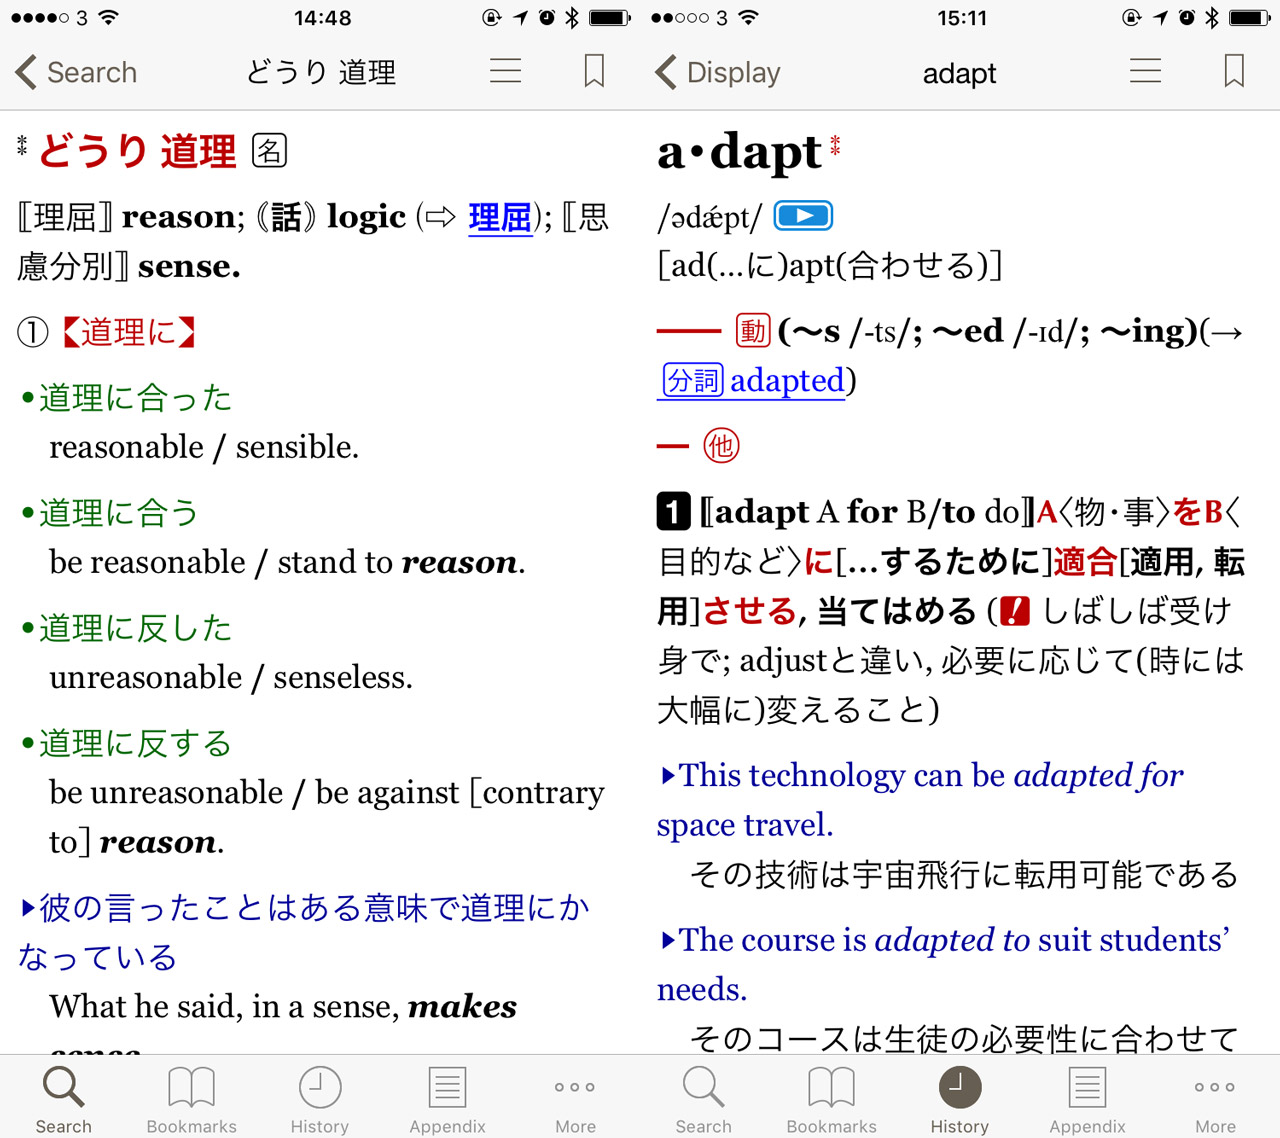 screenshots of the wisdom english japanese dictionary